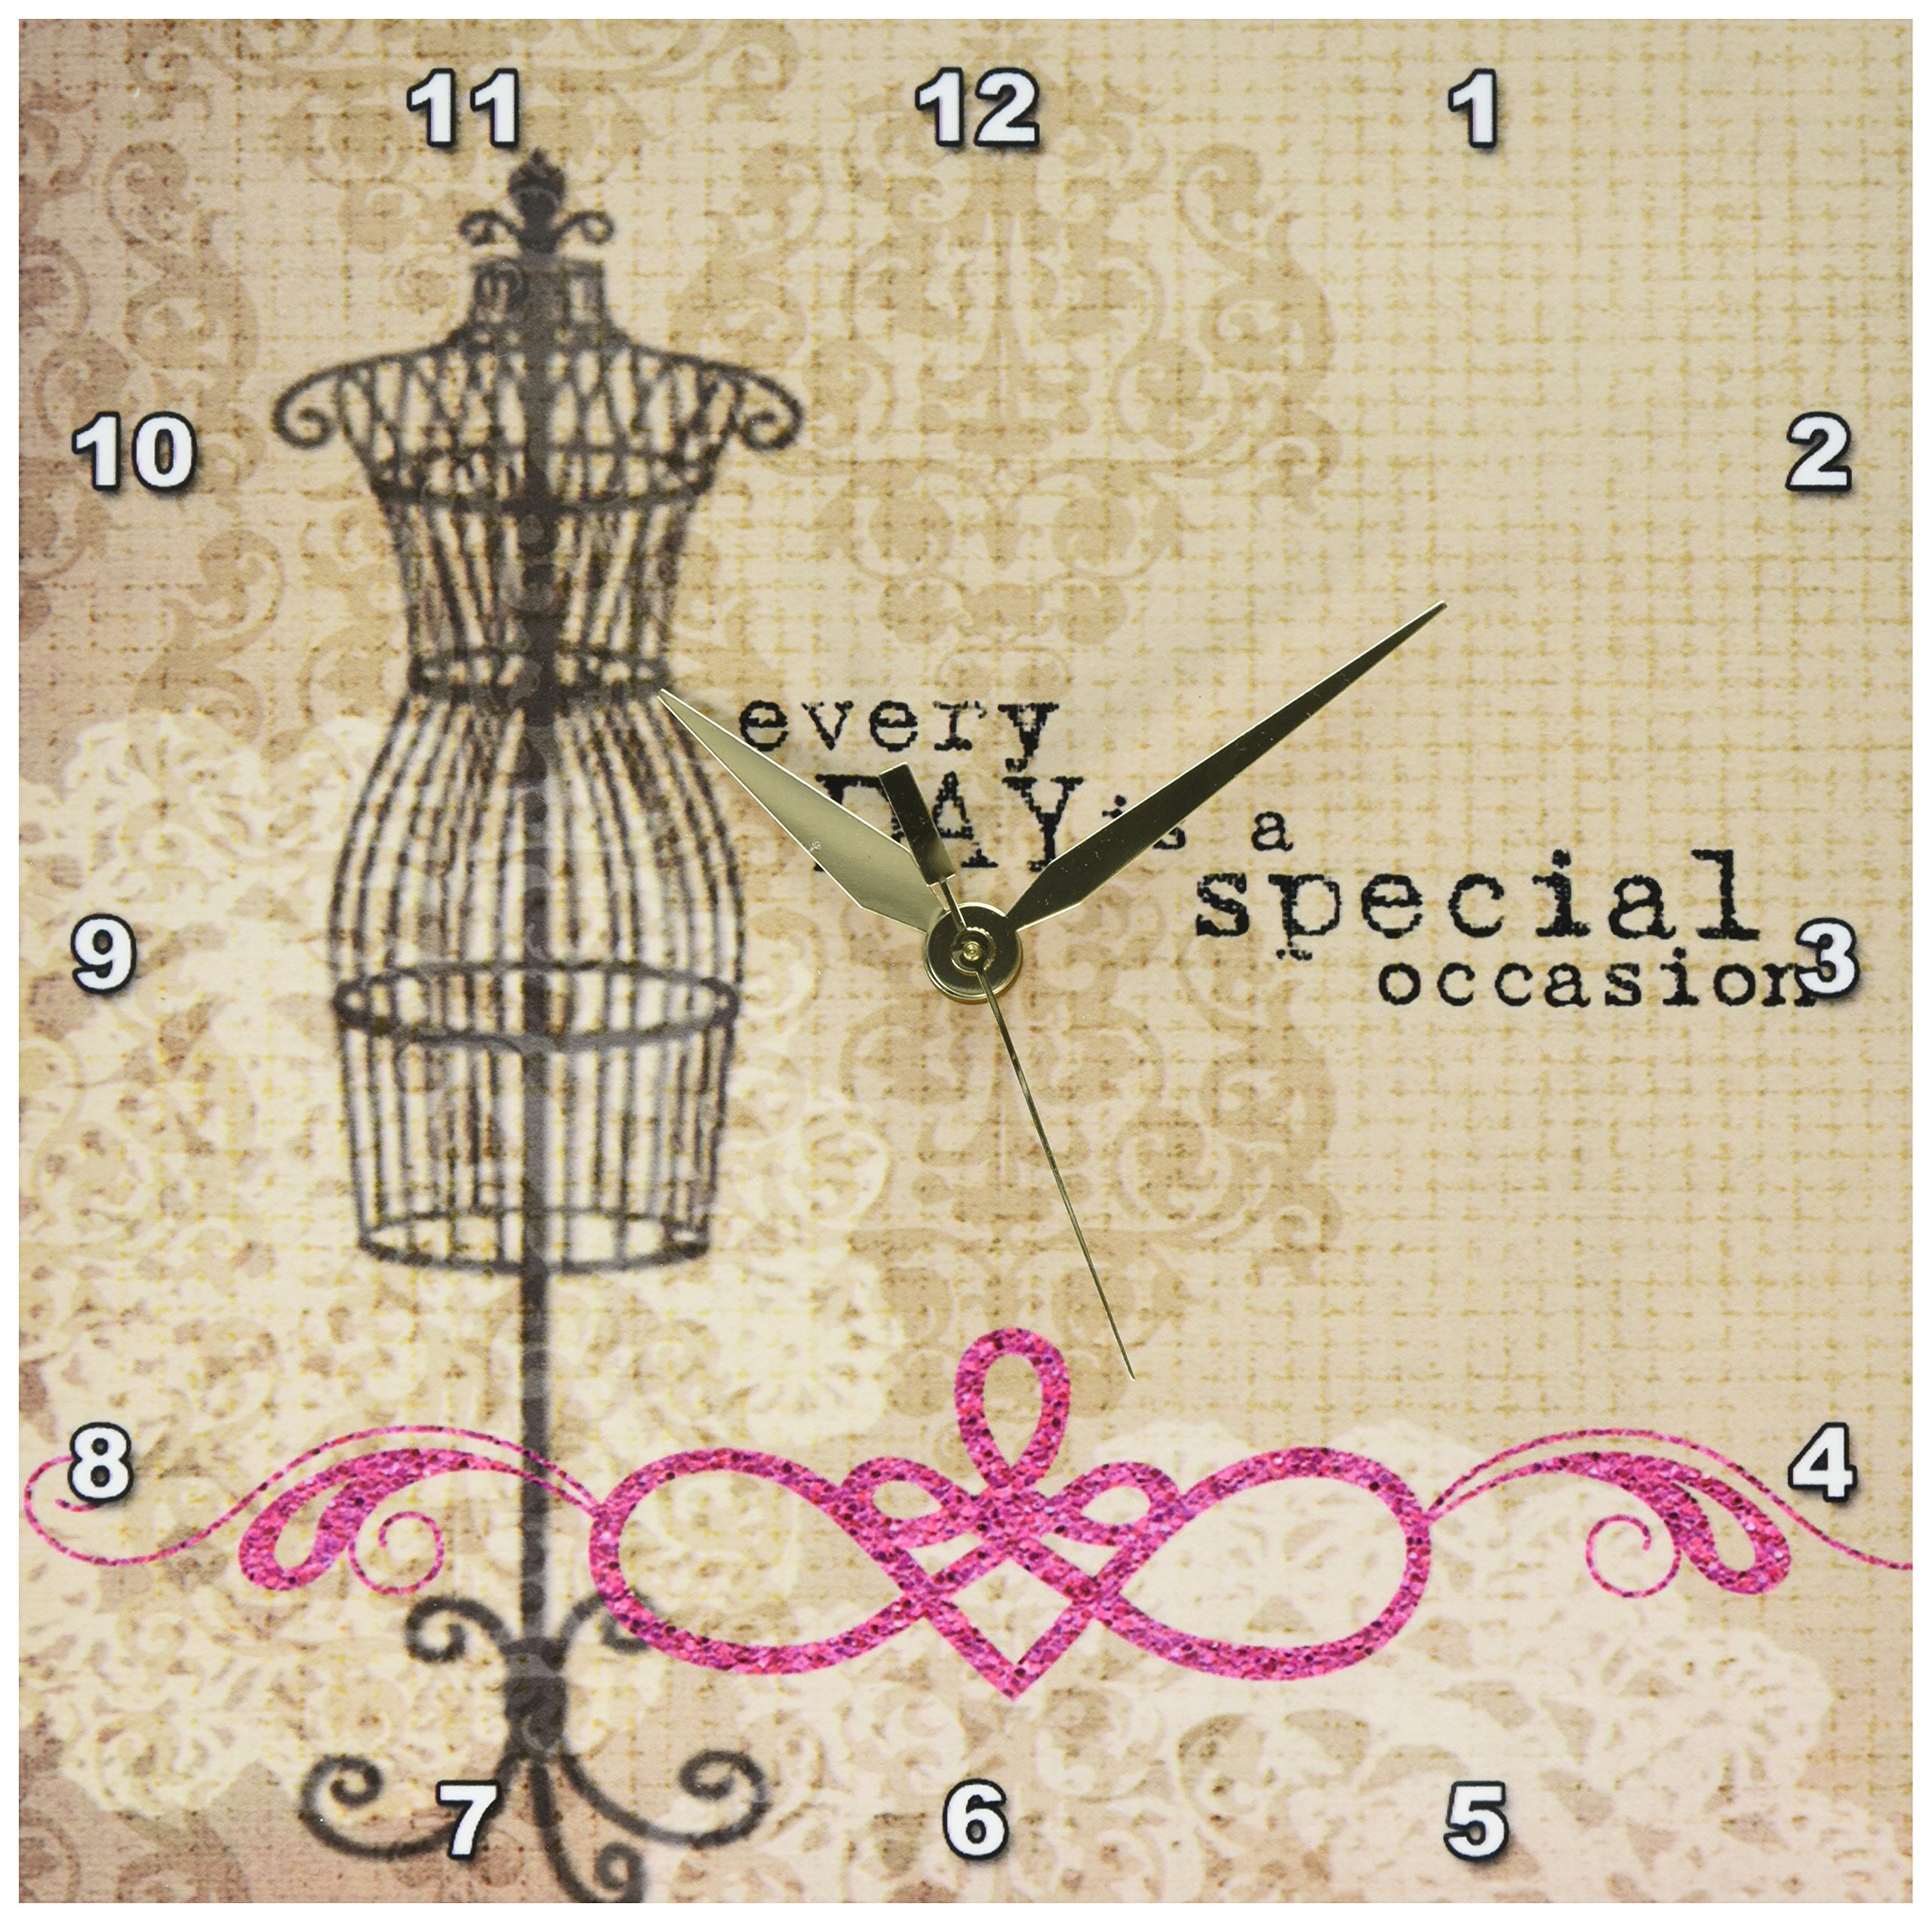 3dRose dpp_213957_1 Vintage Dress form with Every Day is a Special Occasion Wall Clock, 10 x 10